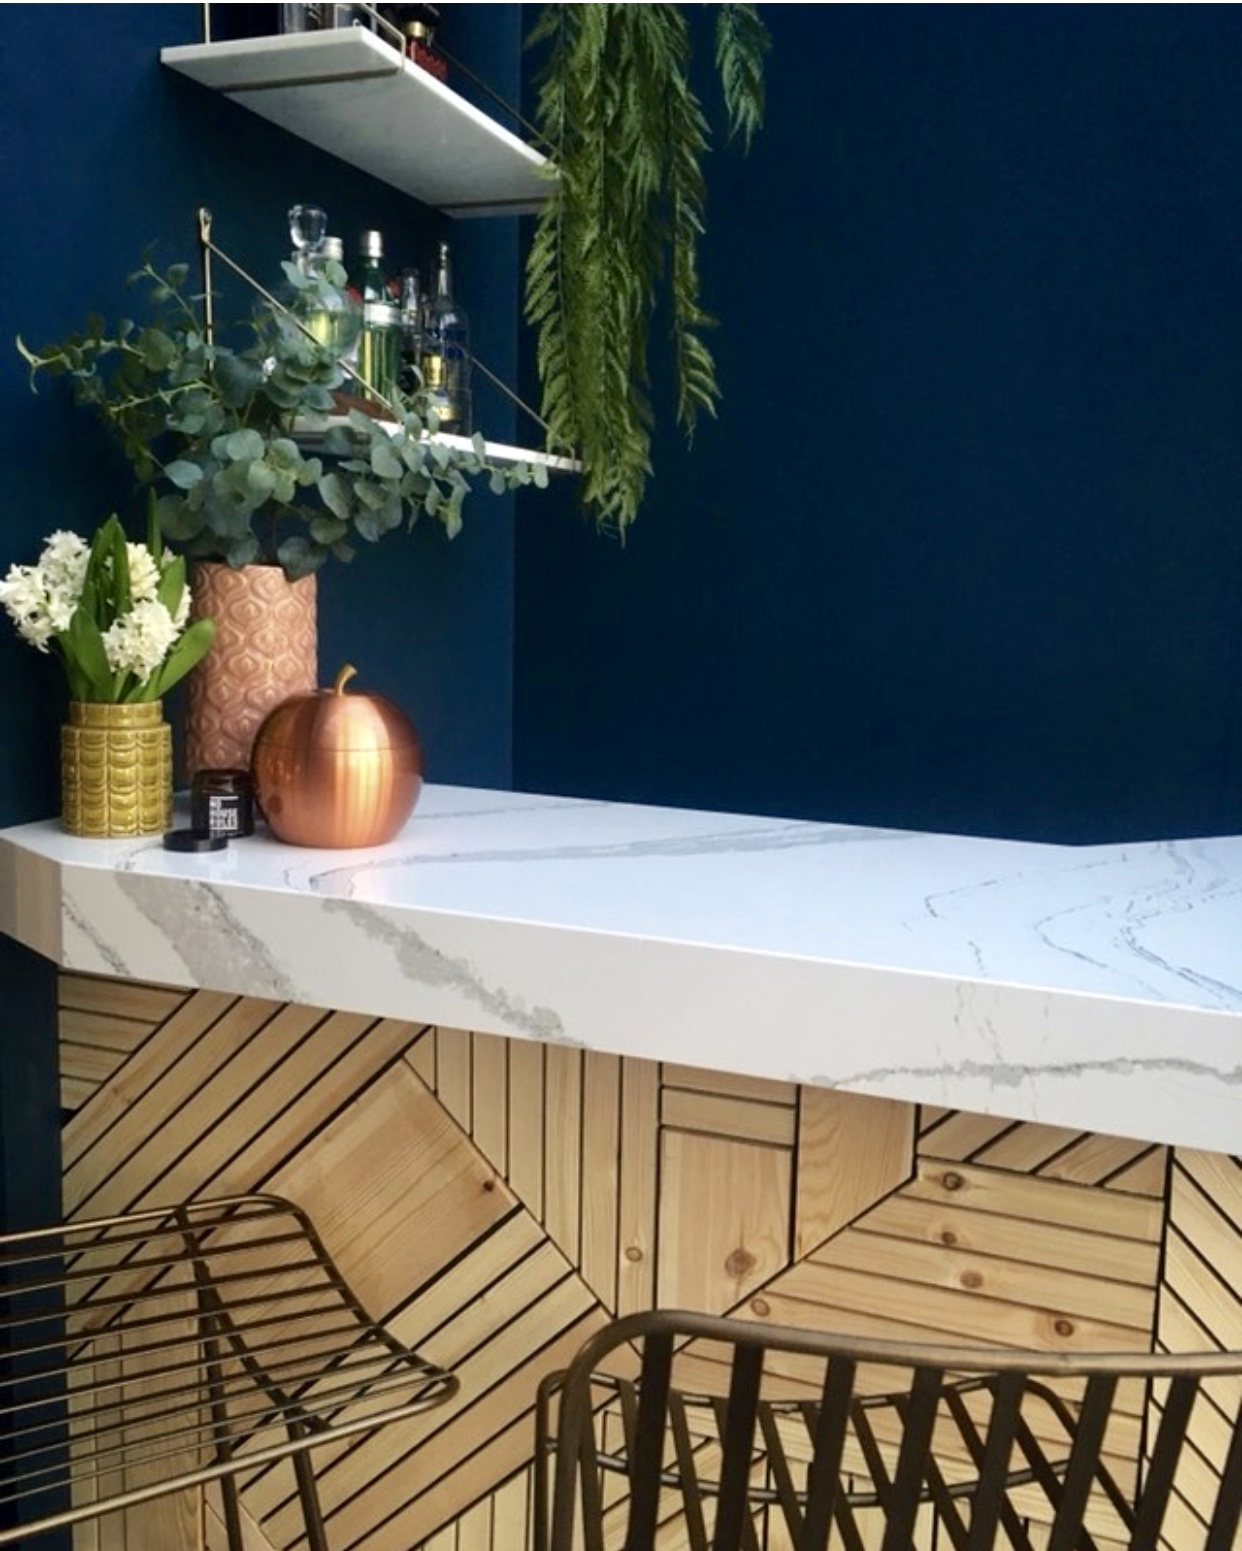 I love the classic marble counter top Donna has added against the geometric wood pattern on the bar....  Midas bar stools Rockett st George ....... Hague Blue wall paint   Farrow & Ball